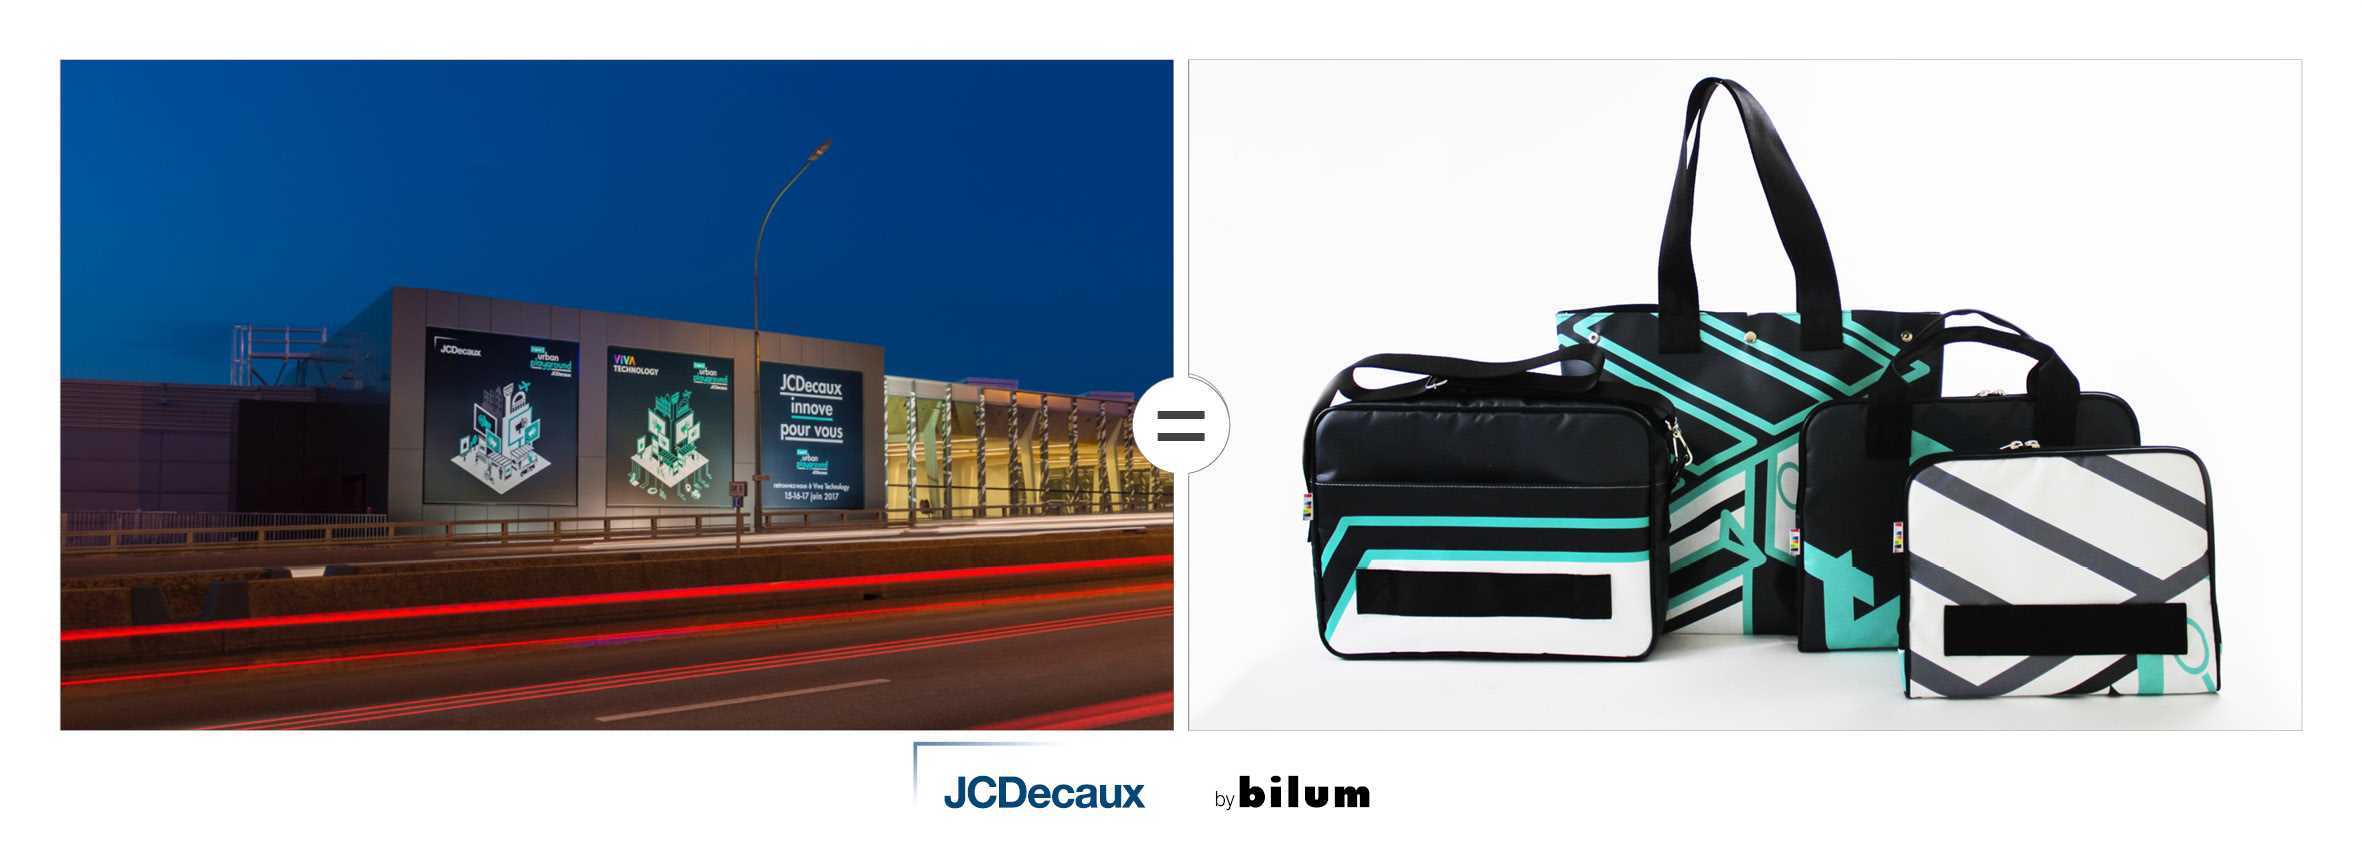 JCDecaux toiles upcyclées by bilum